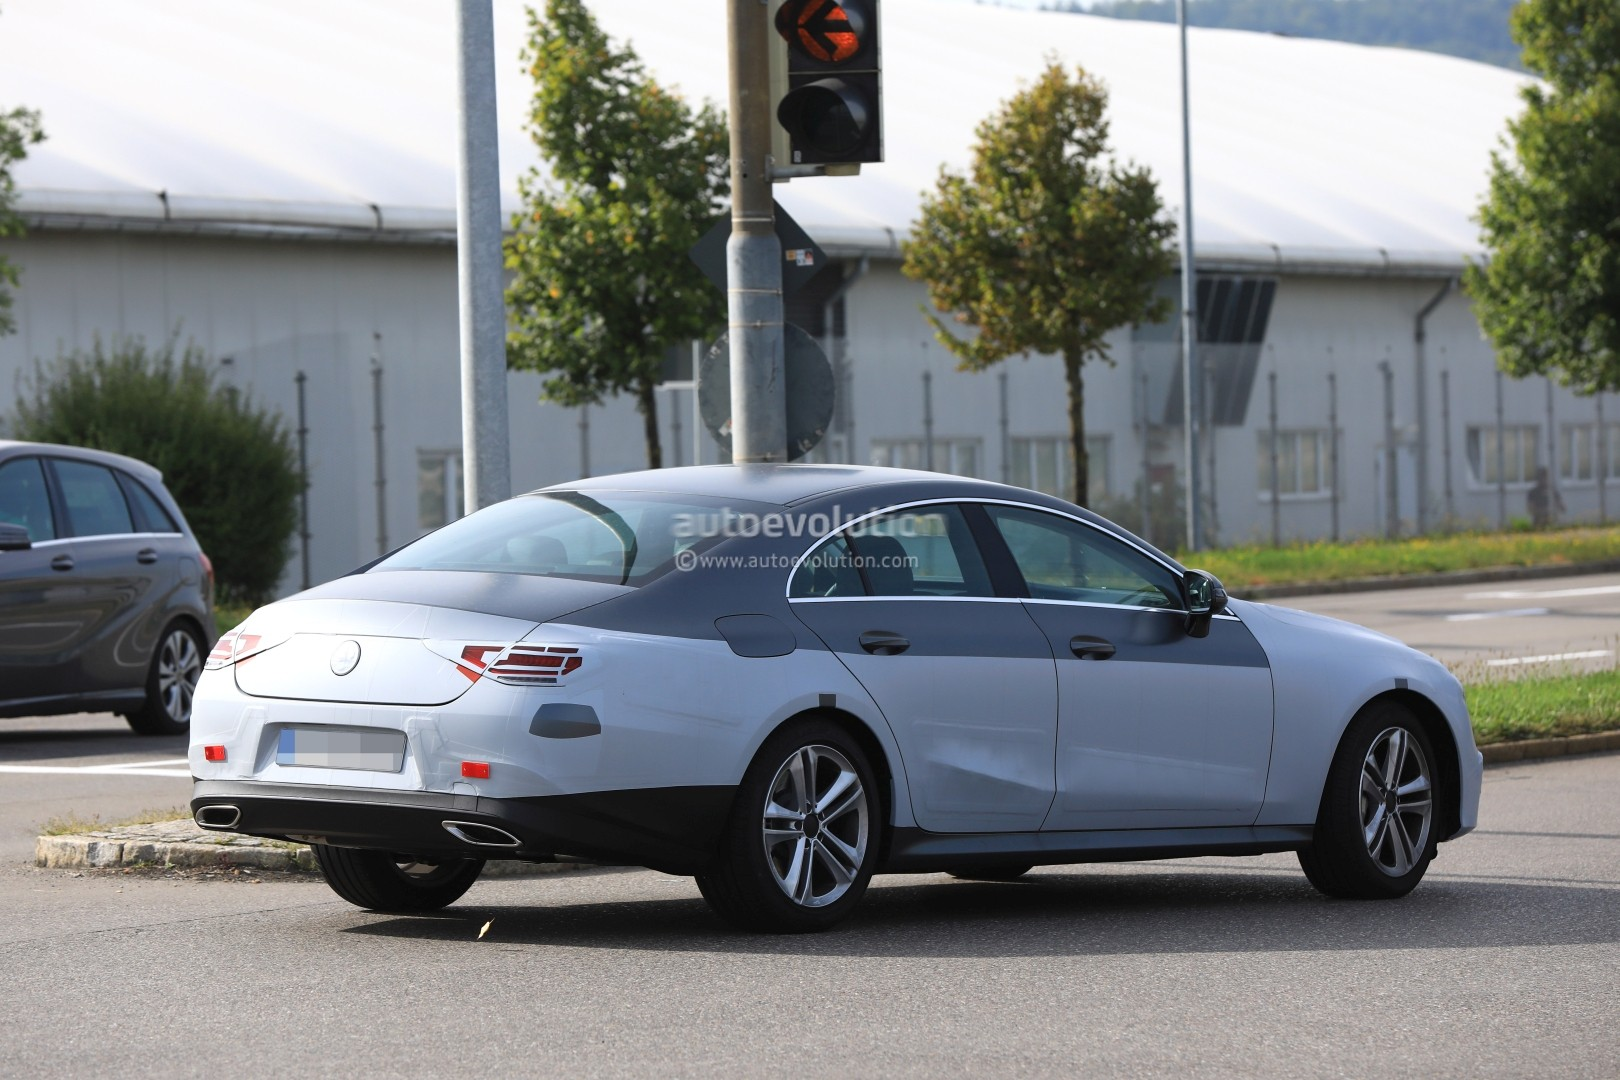 2018 - [Mercedes] CLS III  - Page 3 Spyshots-production-ready-2018-mercedes-benz-cls-amg-line-has-darth-vader-face_16